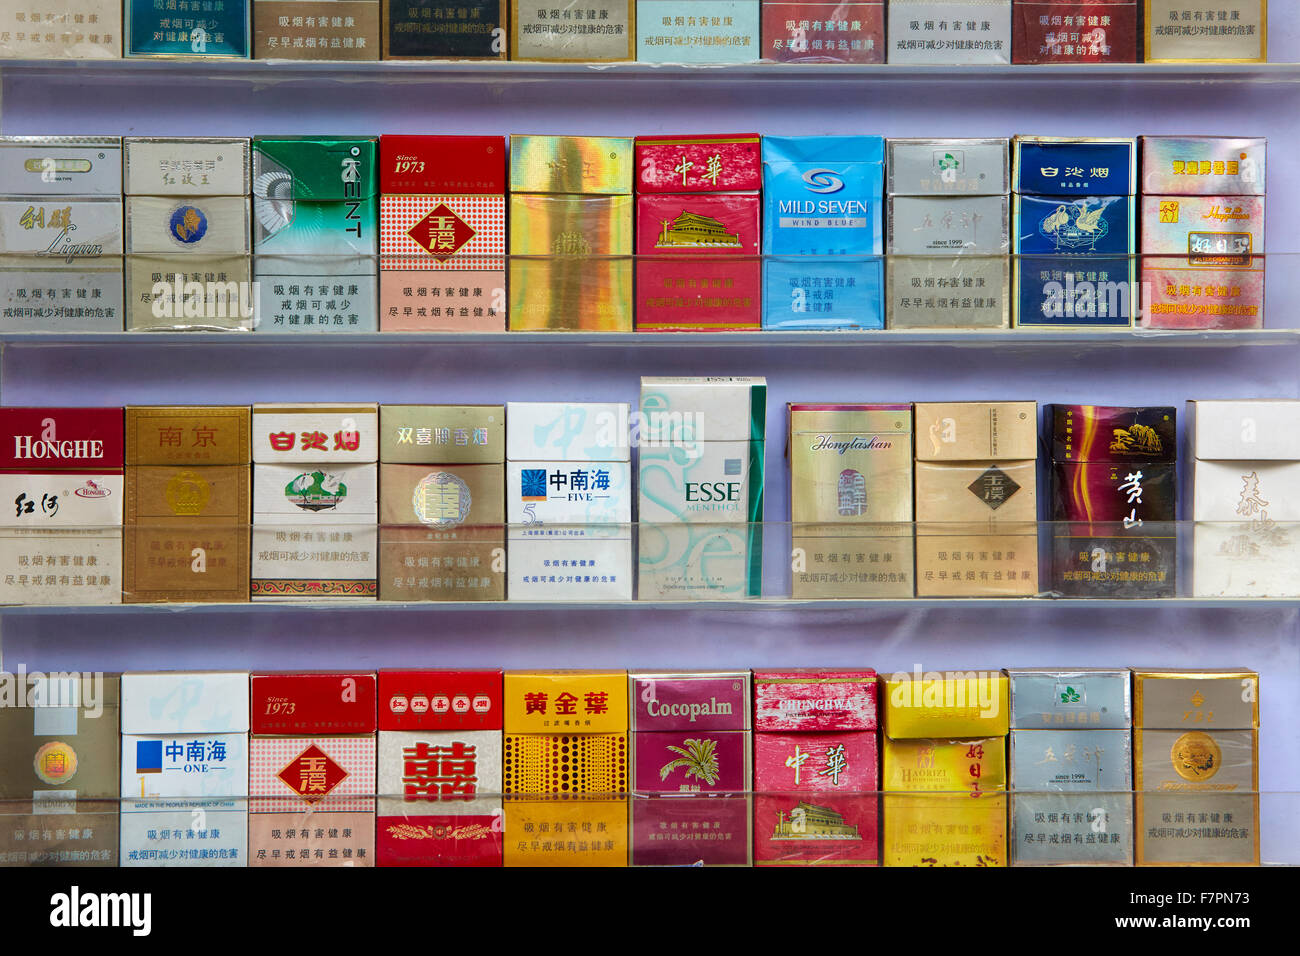 Ireland minimum cigarettes Marlboro price